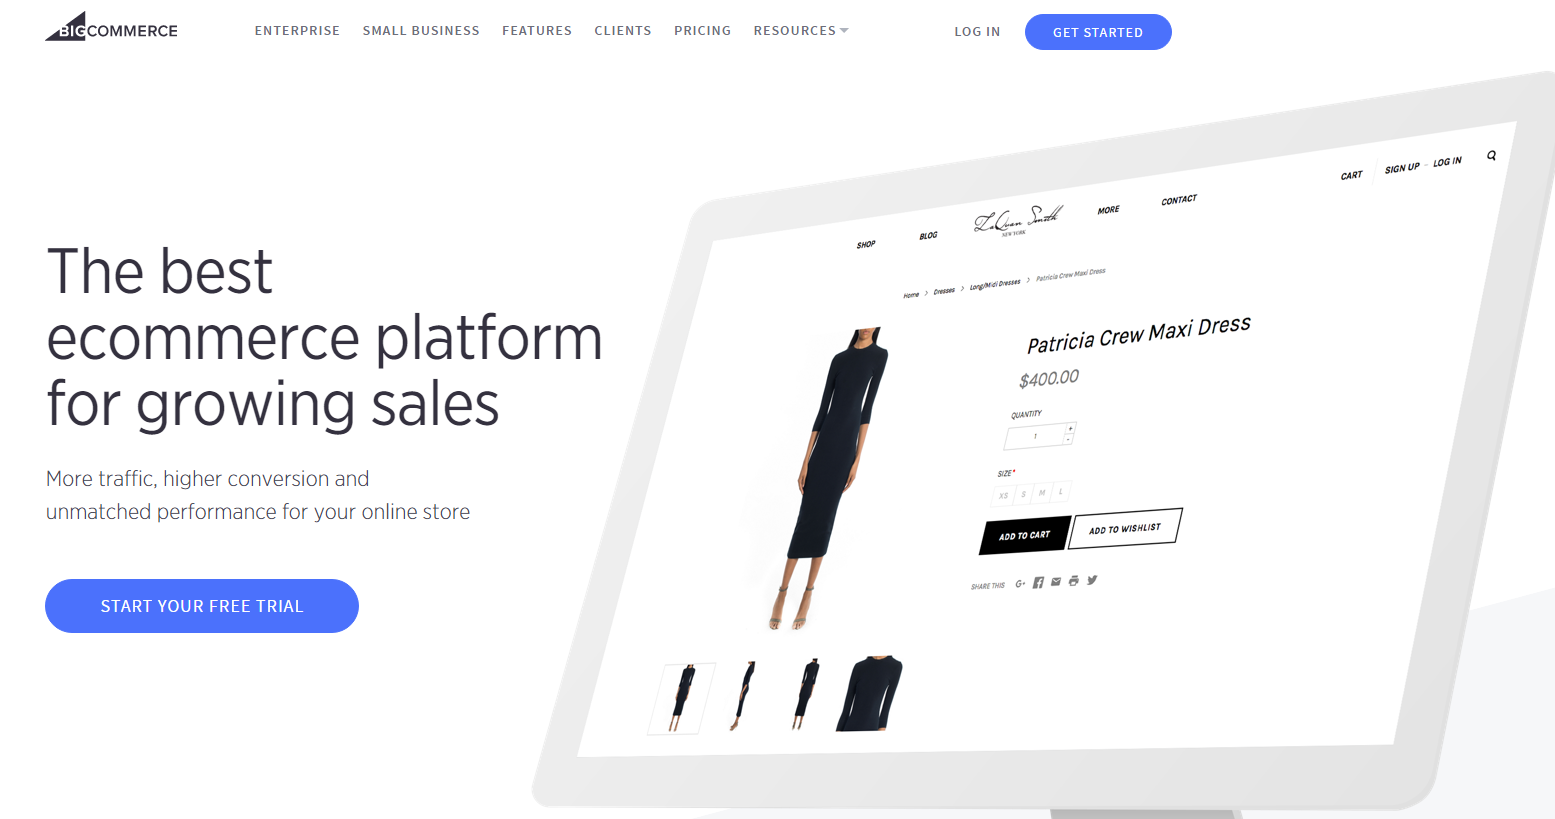 bigcommerce e-commerce platform